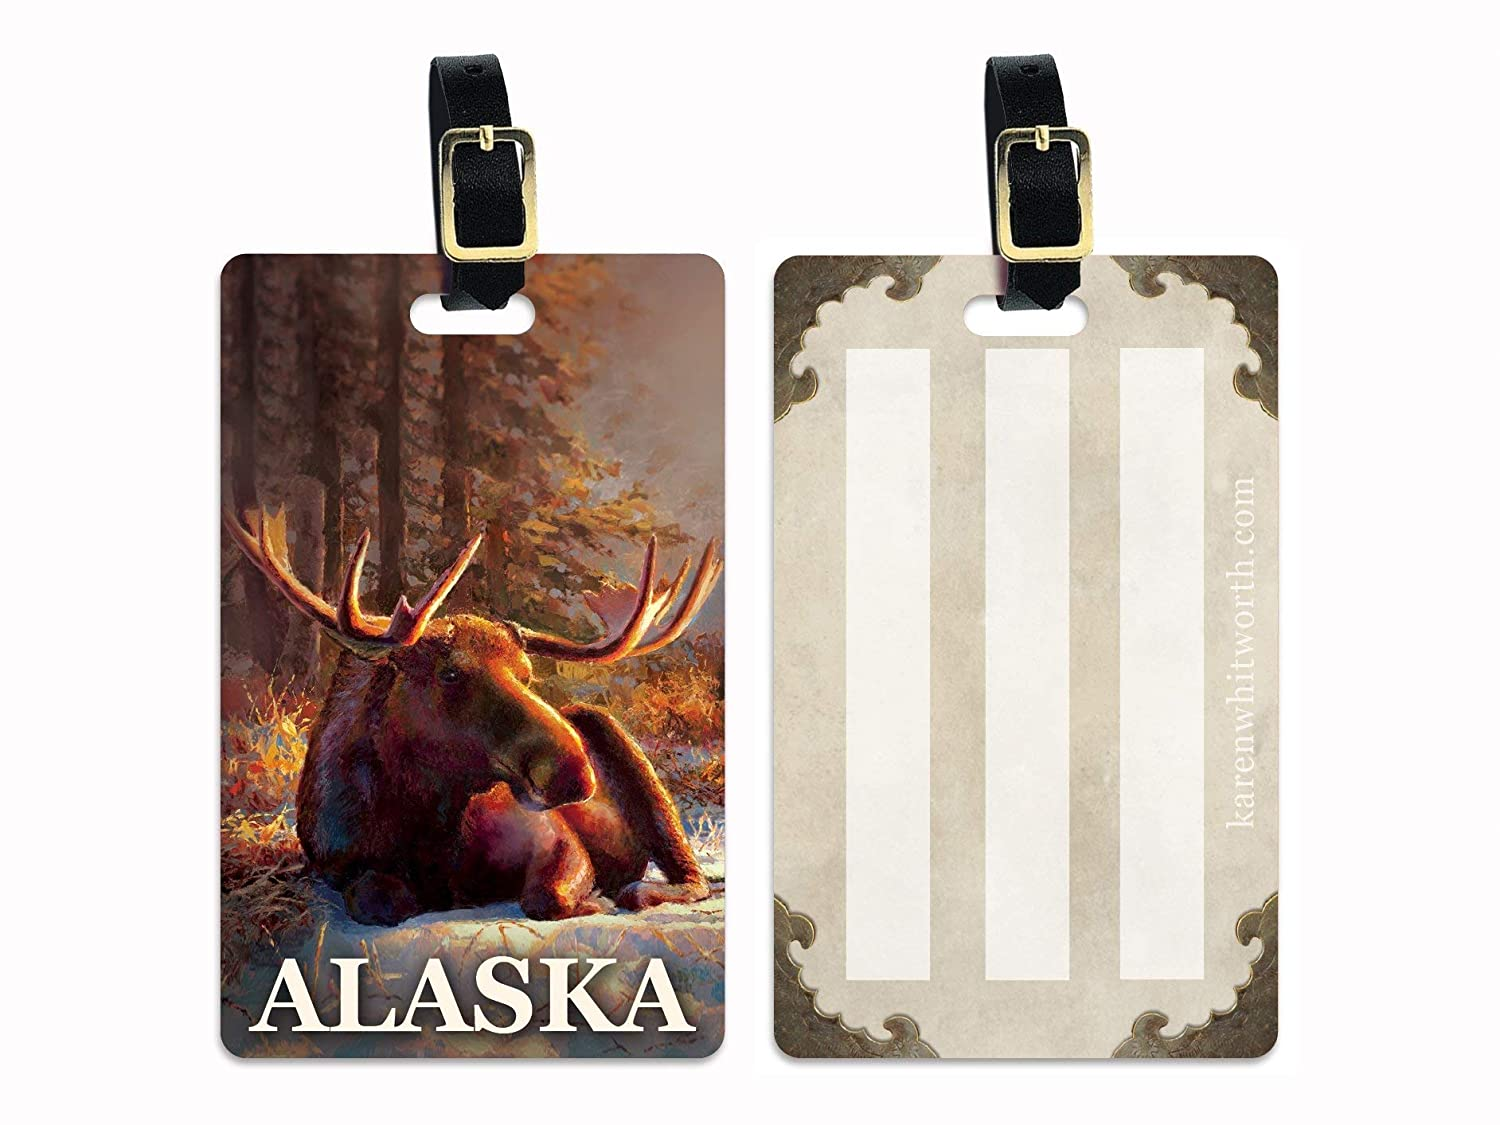 Alaska Super special price Bull Moose Luggage Tag Bargain with Buckle Travel Cru Leather and